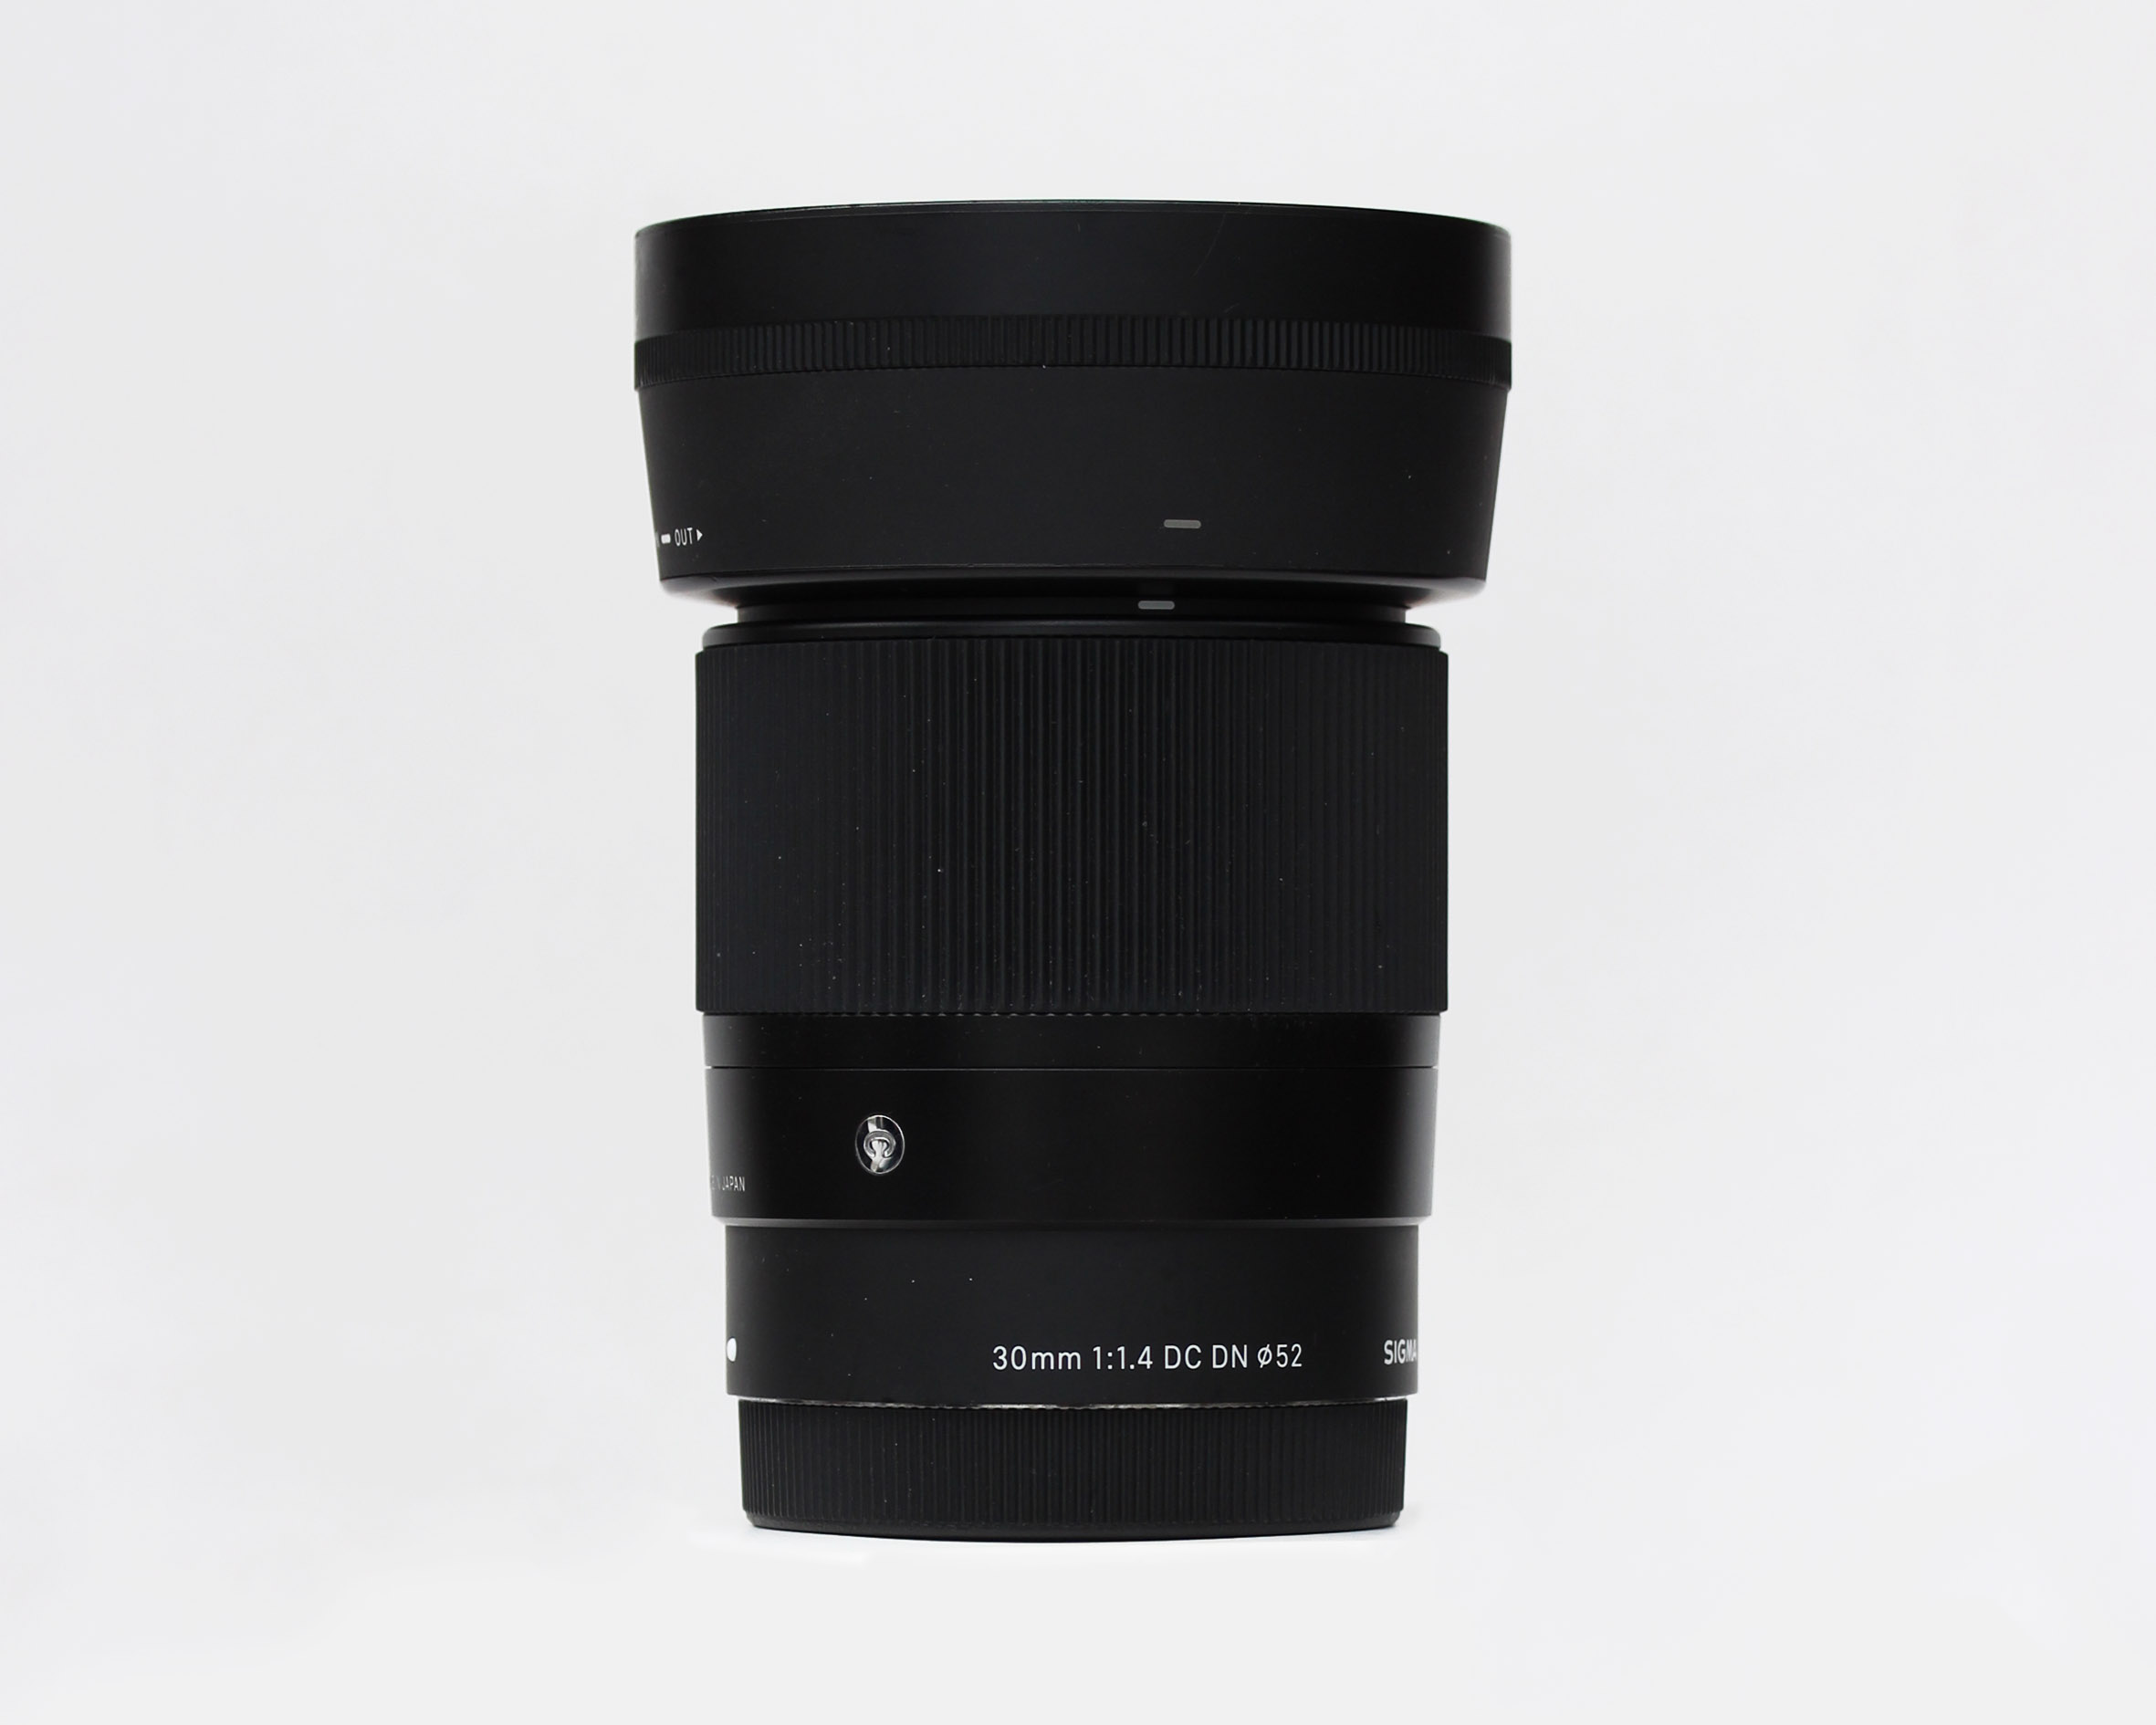 Sigma 30mm f/1.4 DC DN for Sony E Mount